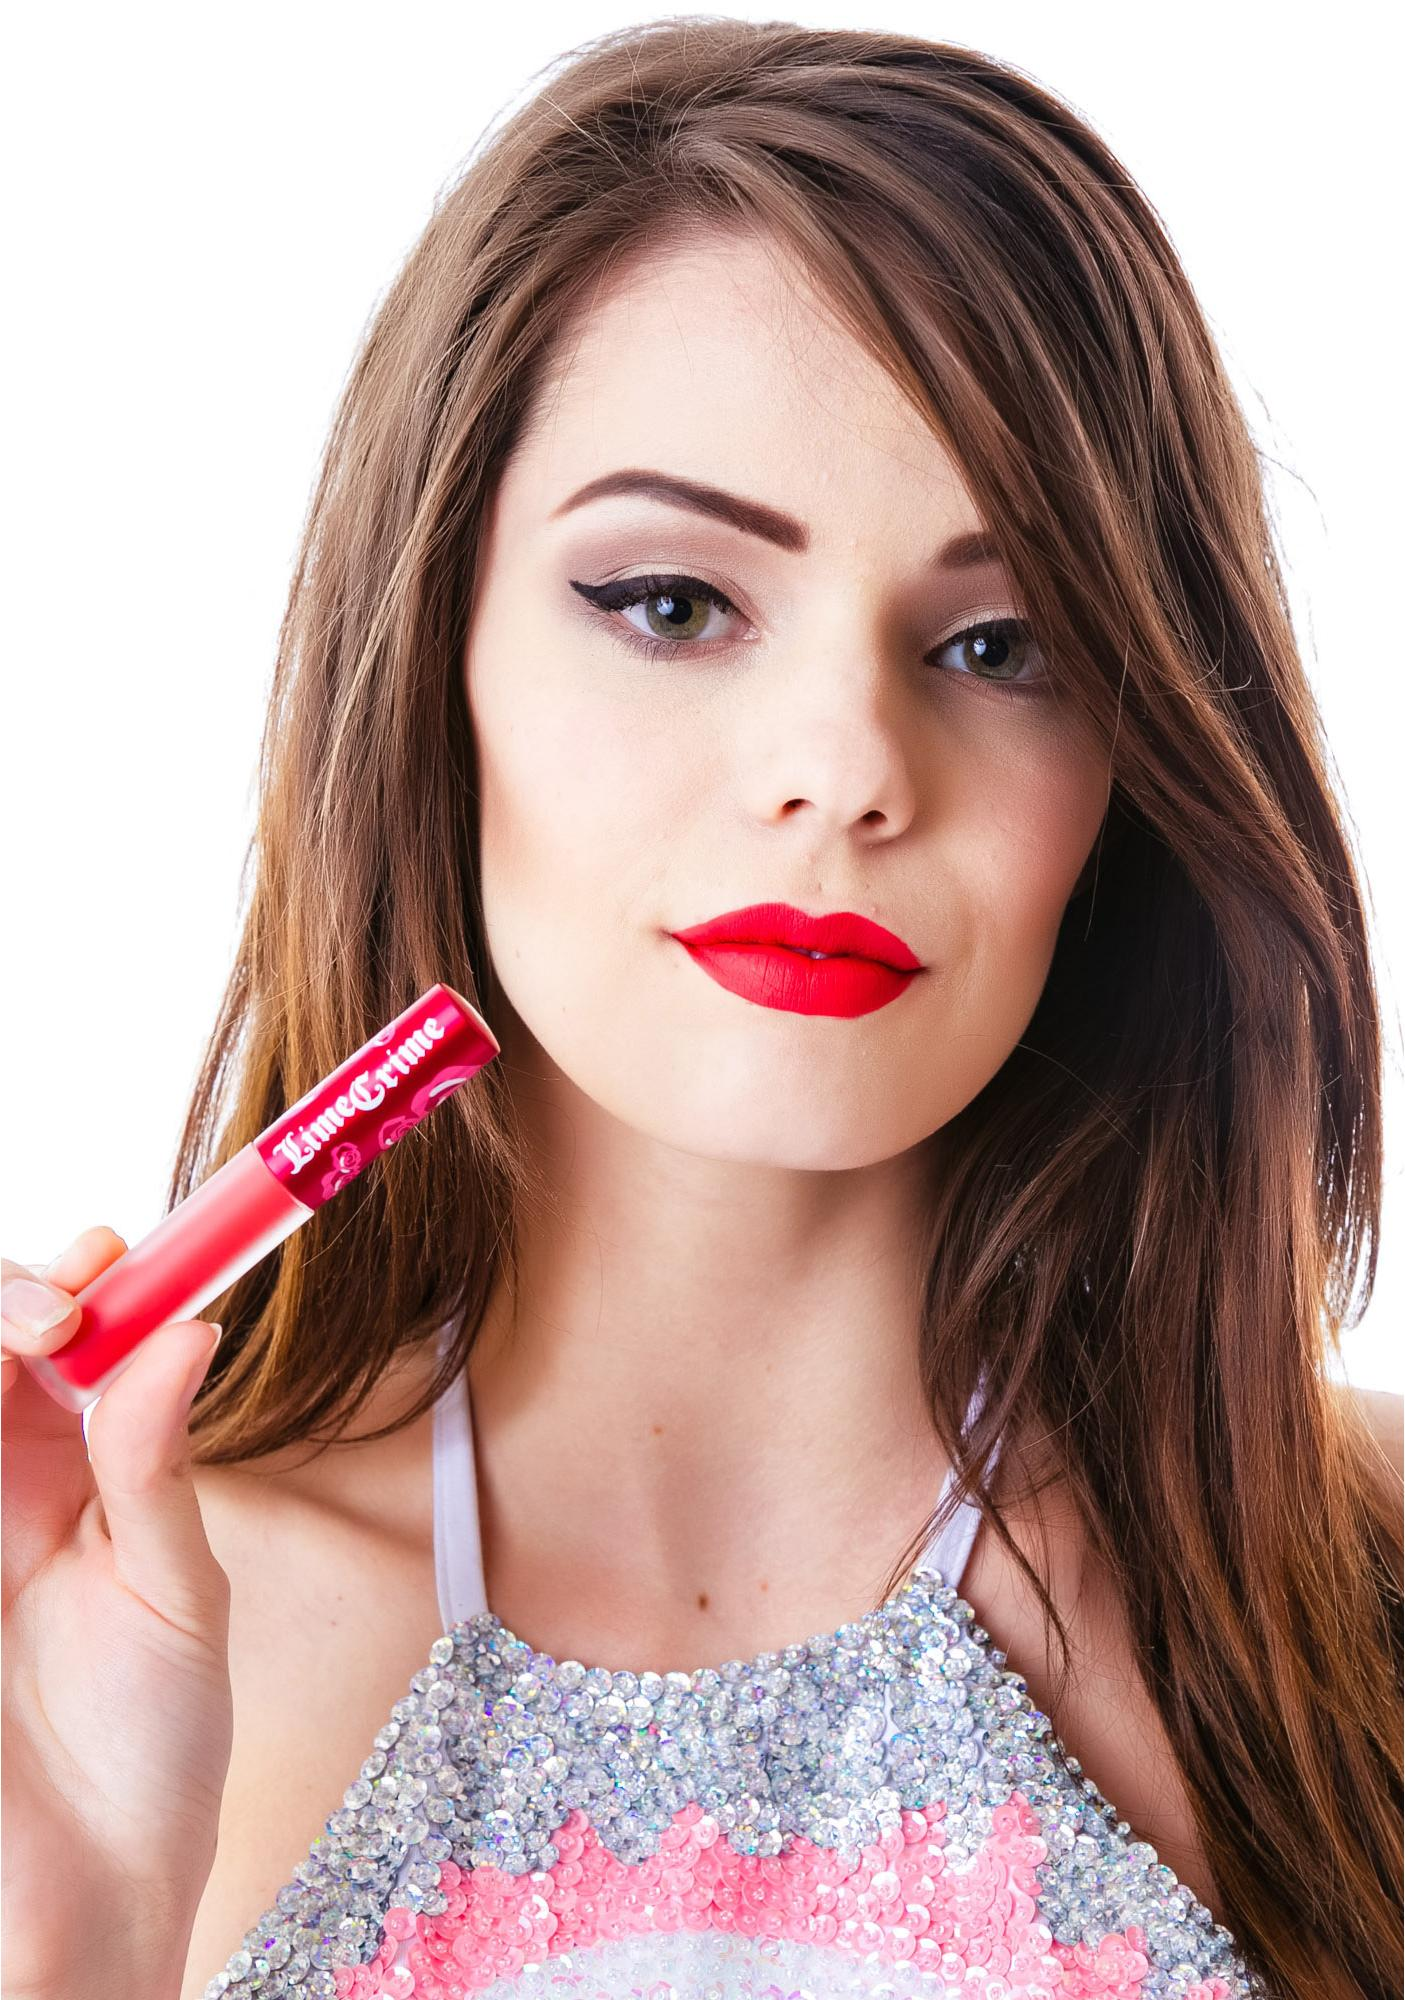 Lime Crime Cupid Velvetine Liquid Lipstick: Lime Crime Red Velvet Velvetine Liquid Lipstick